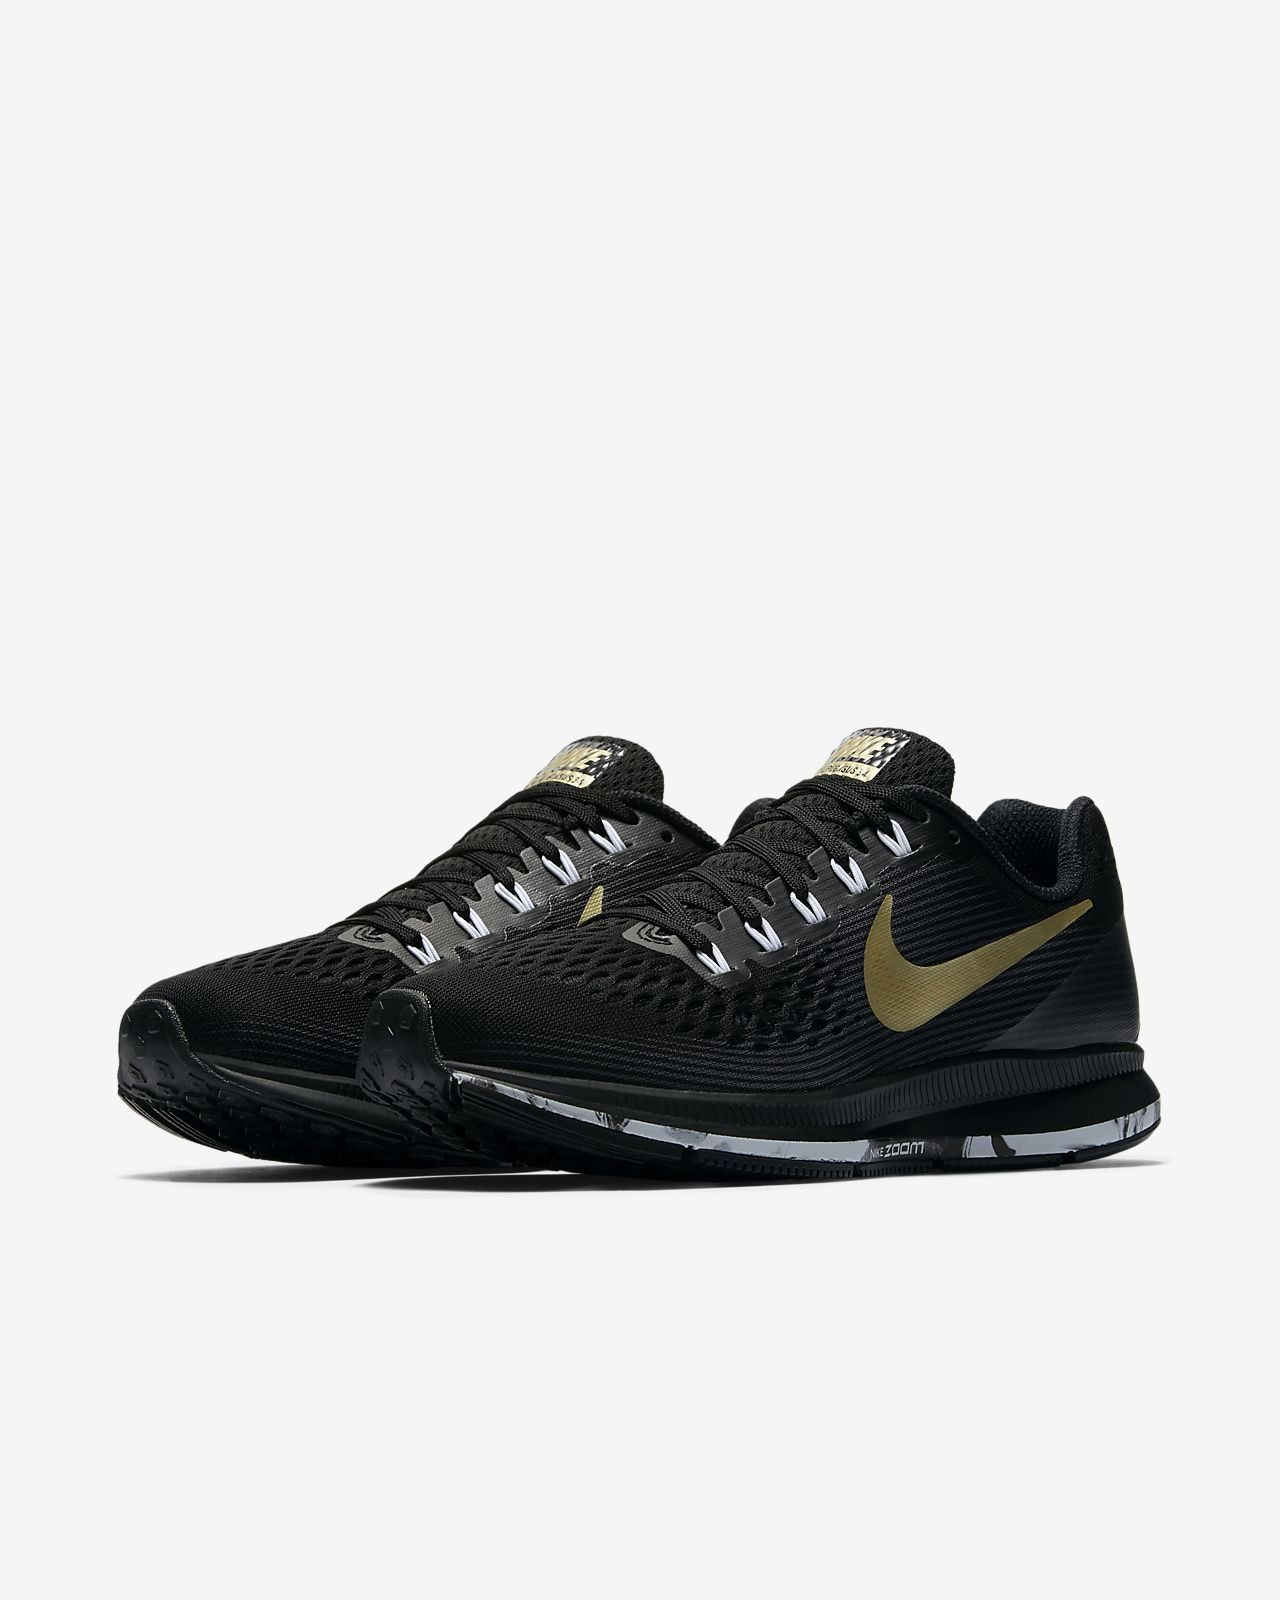 657a9be1dd2 Nike Air Zoom Pegasus 34 Women s Running Shoe Nike Air Zoom Pegasus